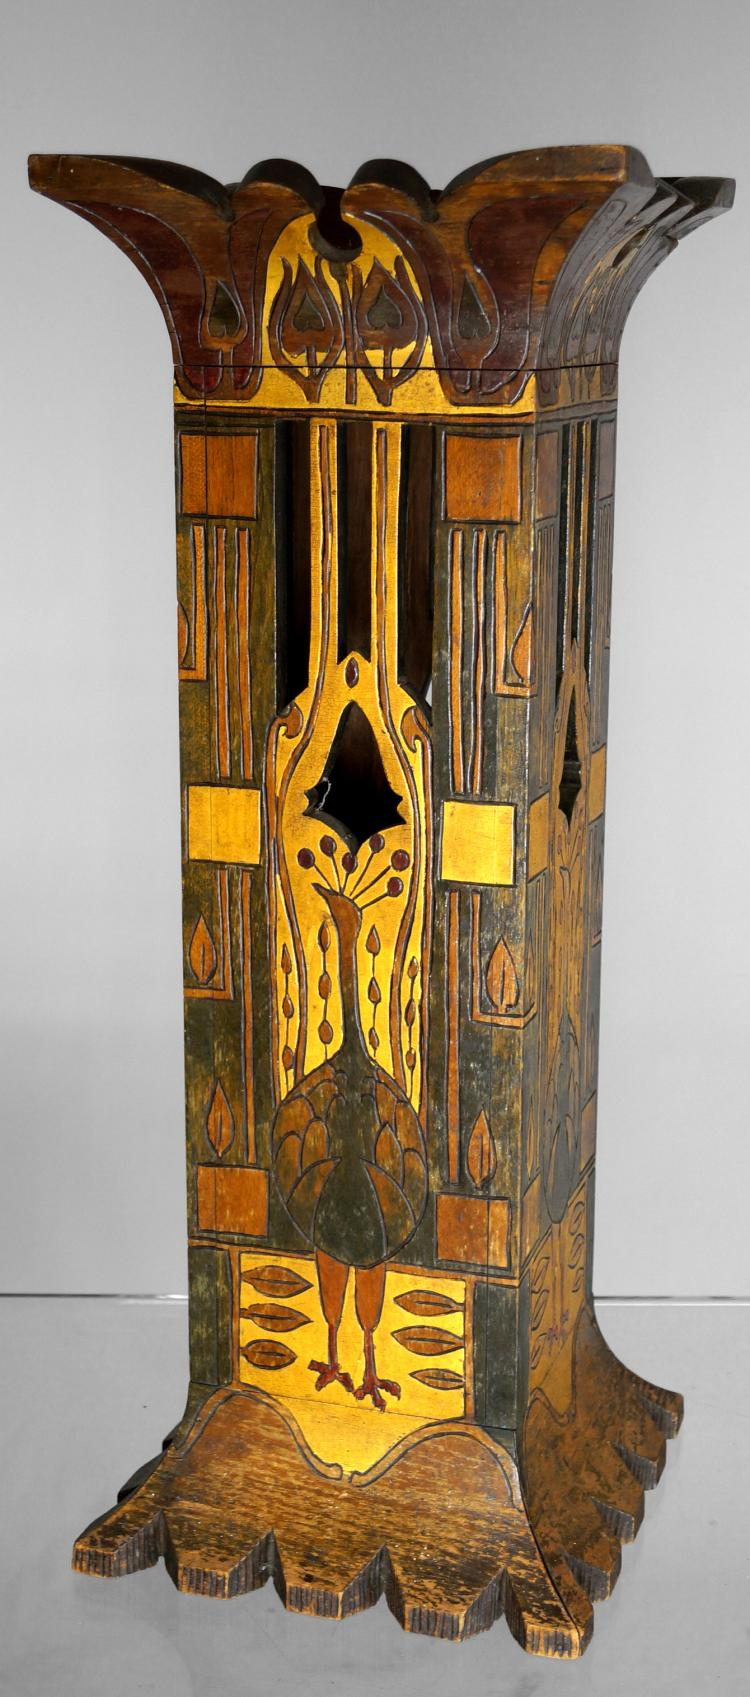 ART NOUVEAU CARVED AND POLYCHROMED WOOD UMBRELLA STAND. HEIGHT 28 1/2